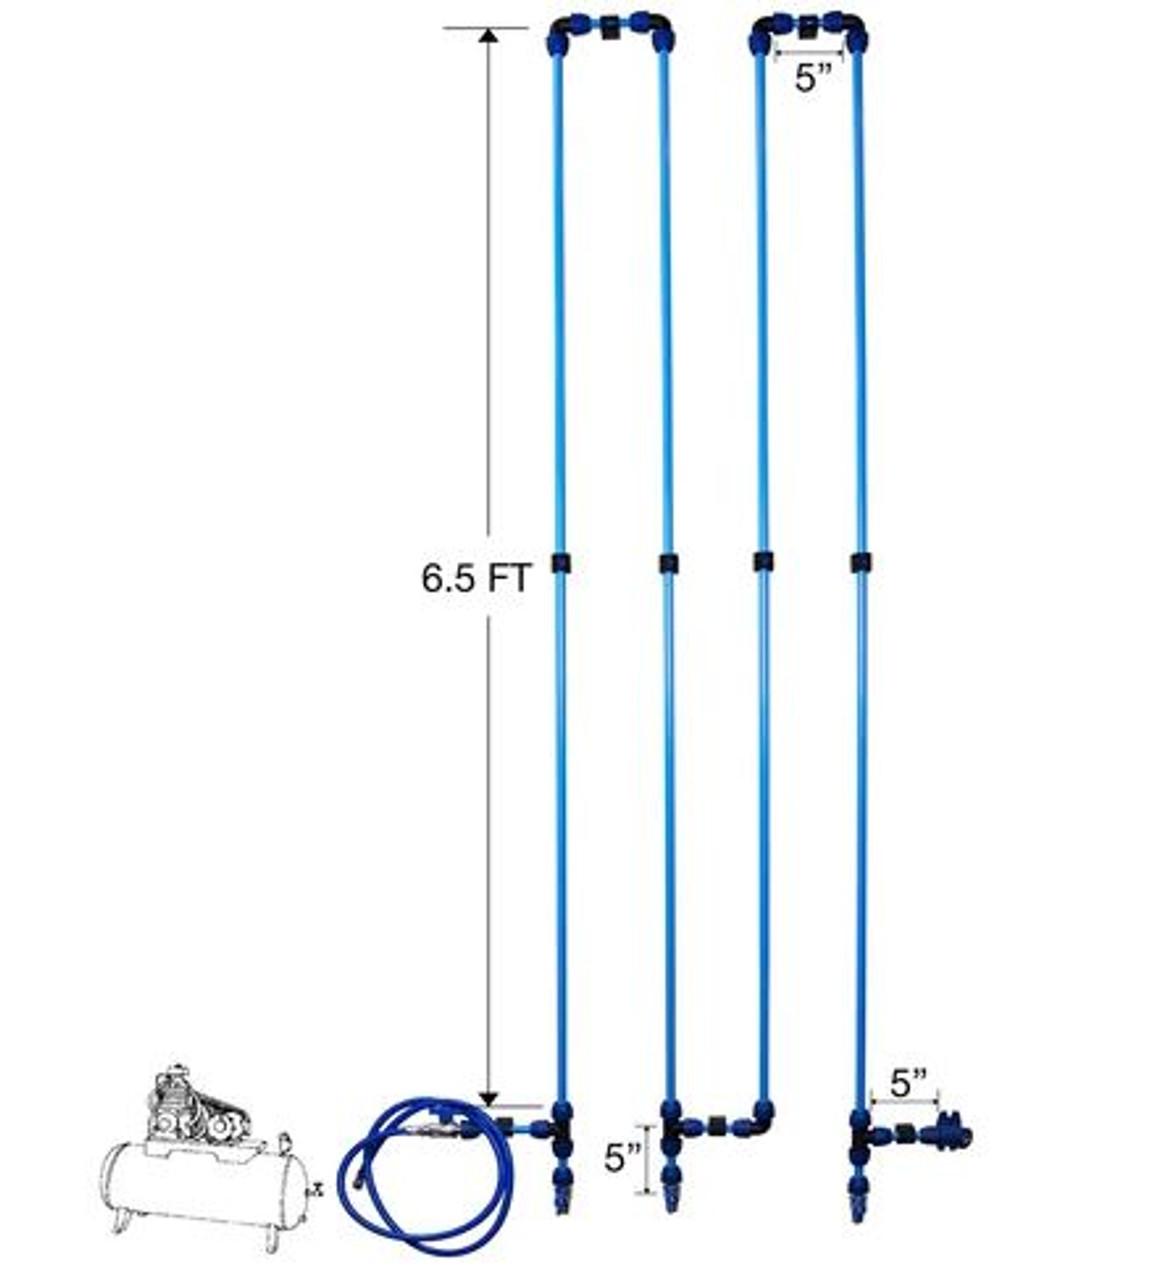 QLK32 Air Cooling Piping System 1/2""